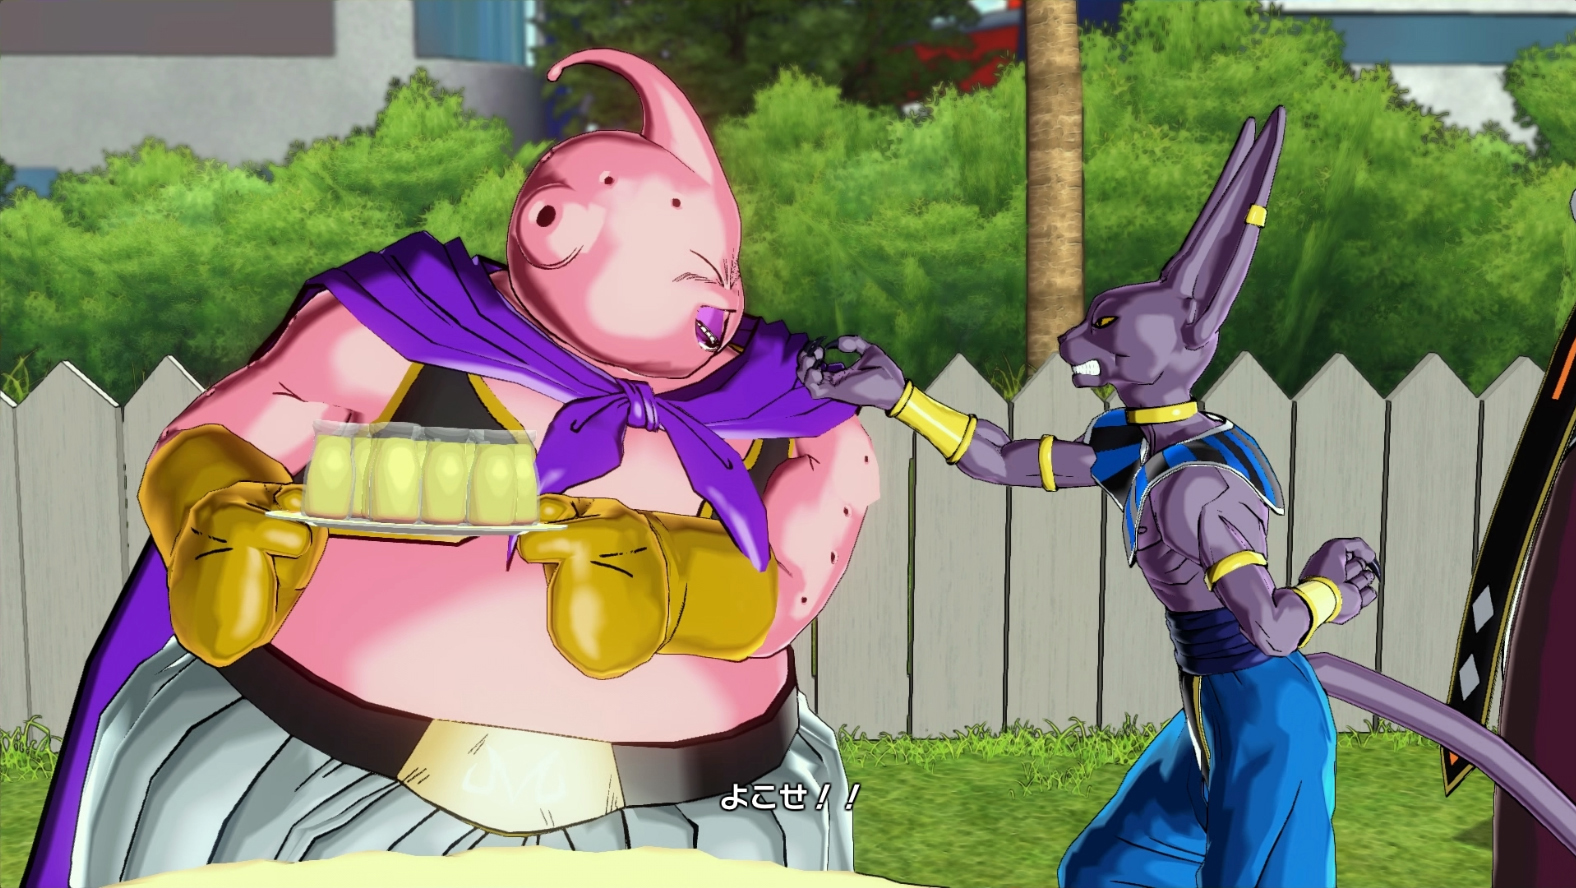 Dragon Ball Xenoverse Jan 2015 Screenshots 6